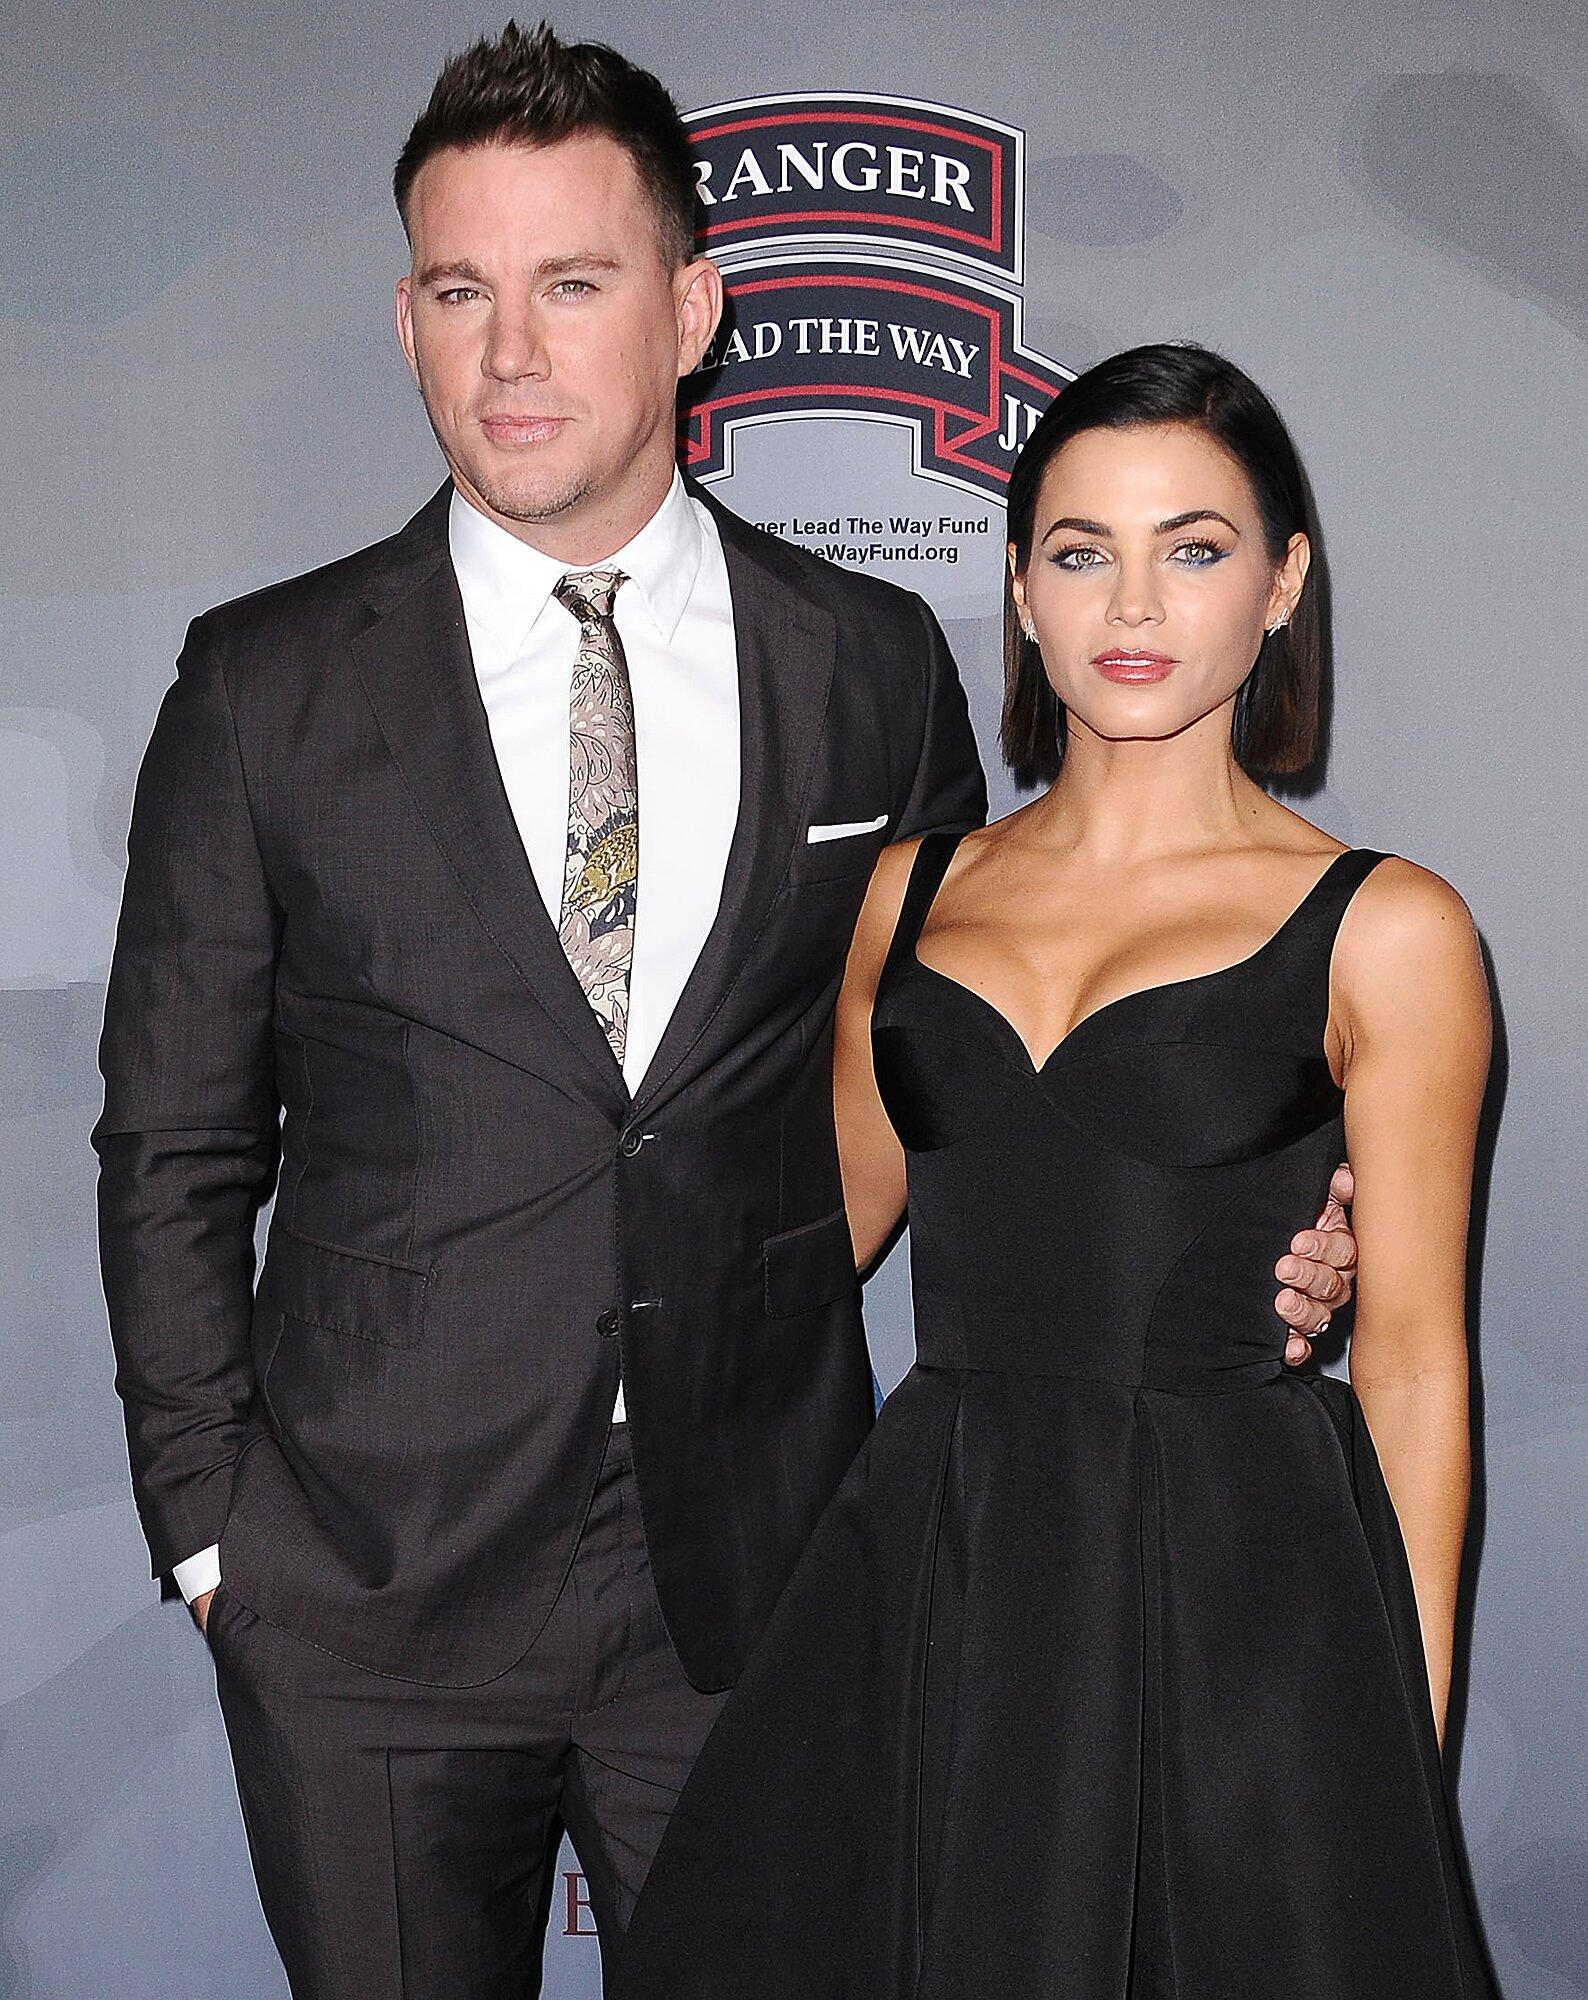 Jenna Dewan Says Ex Channing Tatum 'Wasn't Available' for Weeks After Daughter Everly's Birth